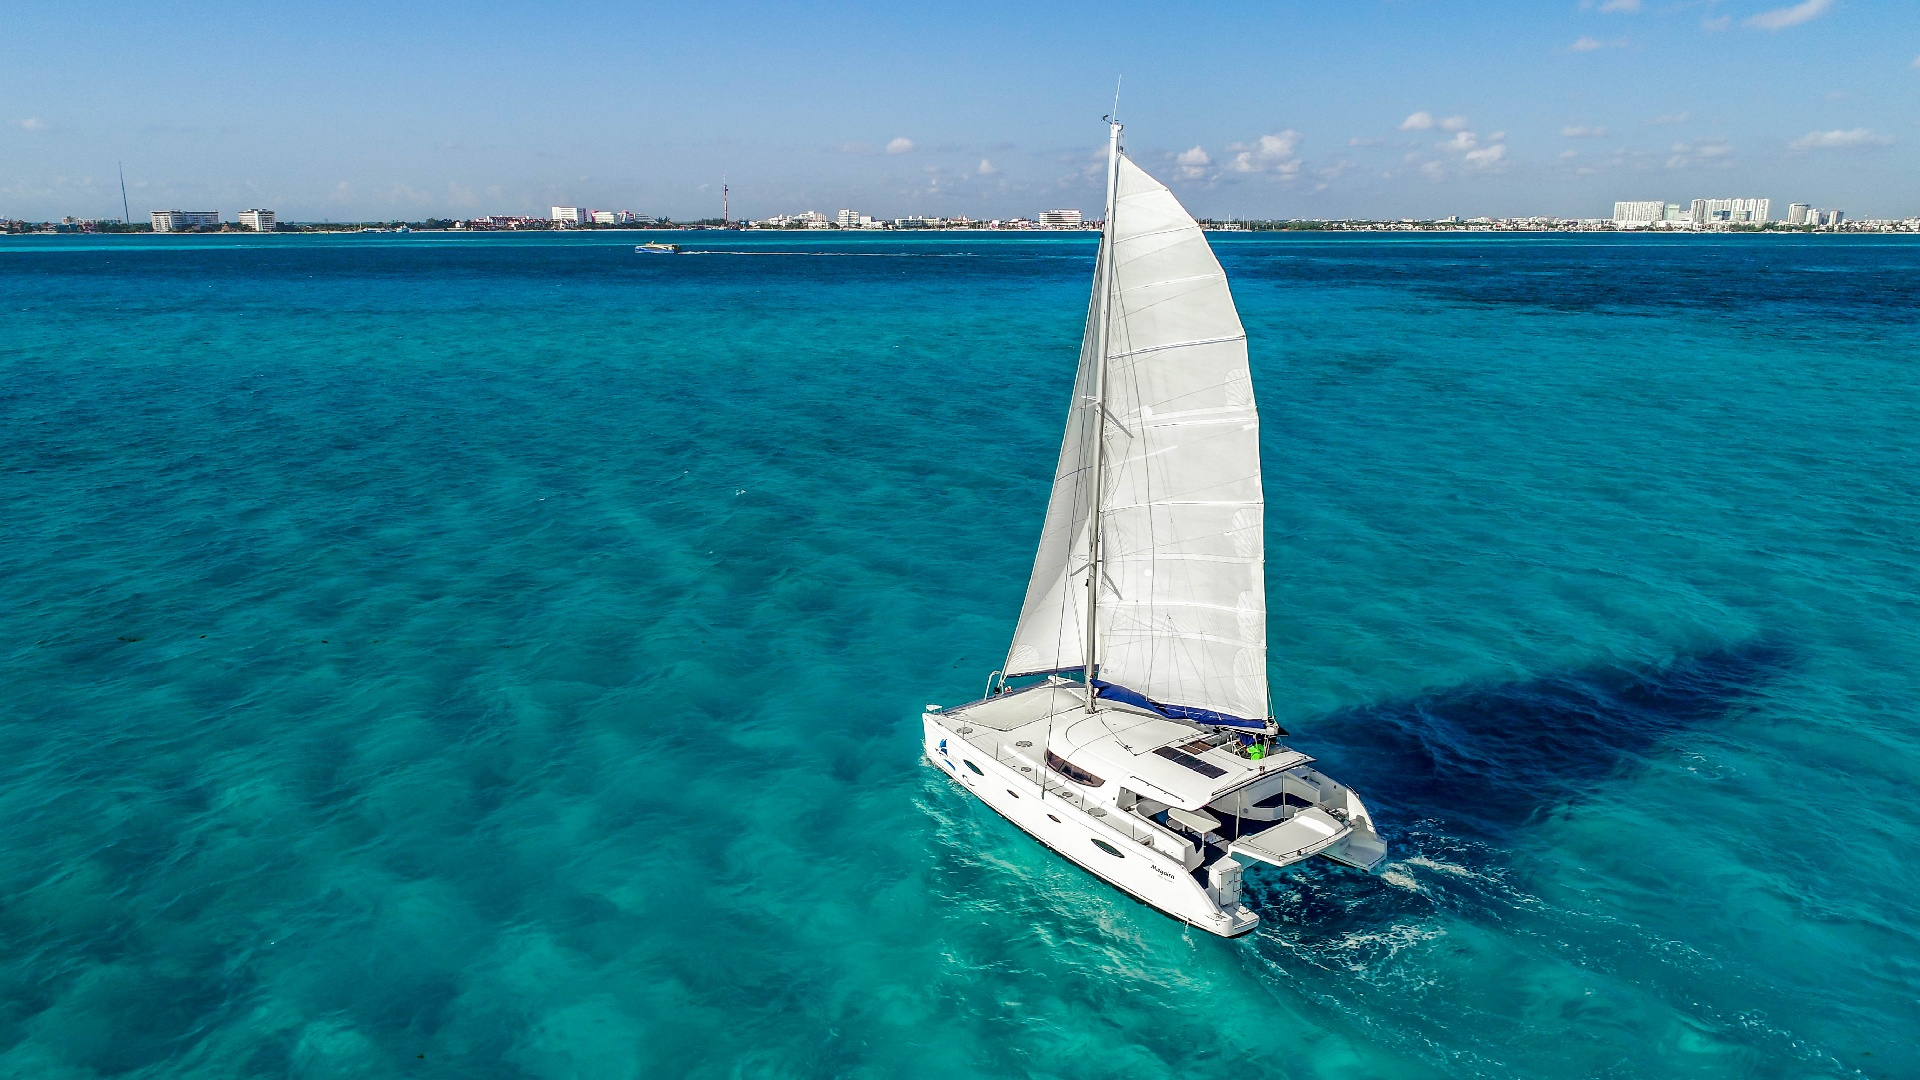 5 - LowRes Megaira- Private tour to Isla Mujeres in catamaran - Cancun Sailing